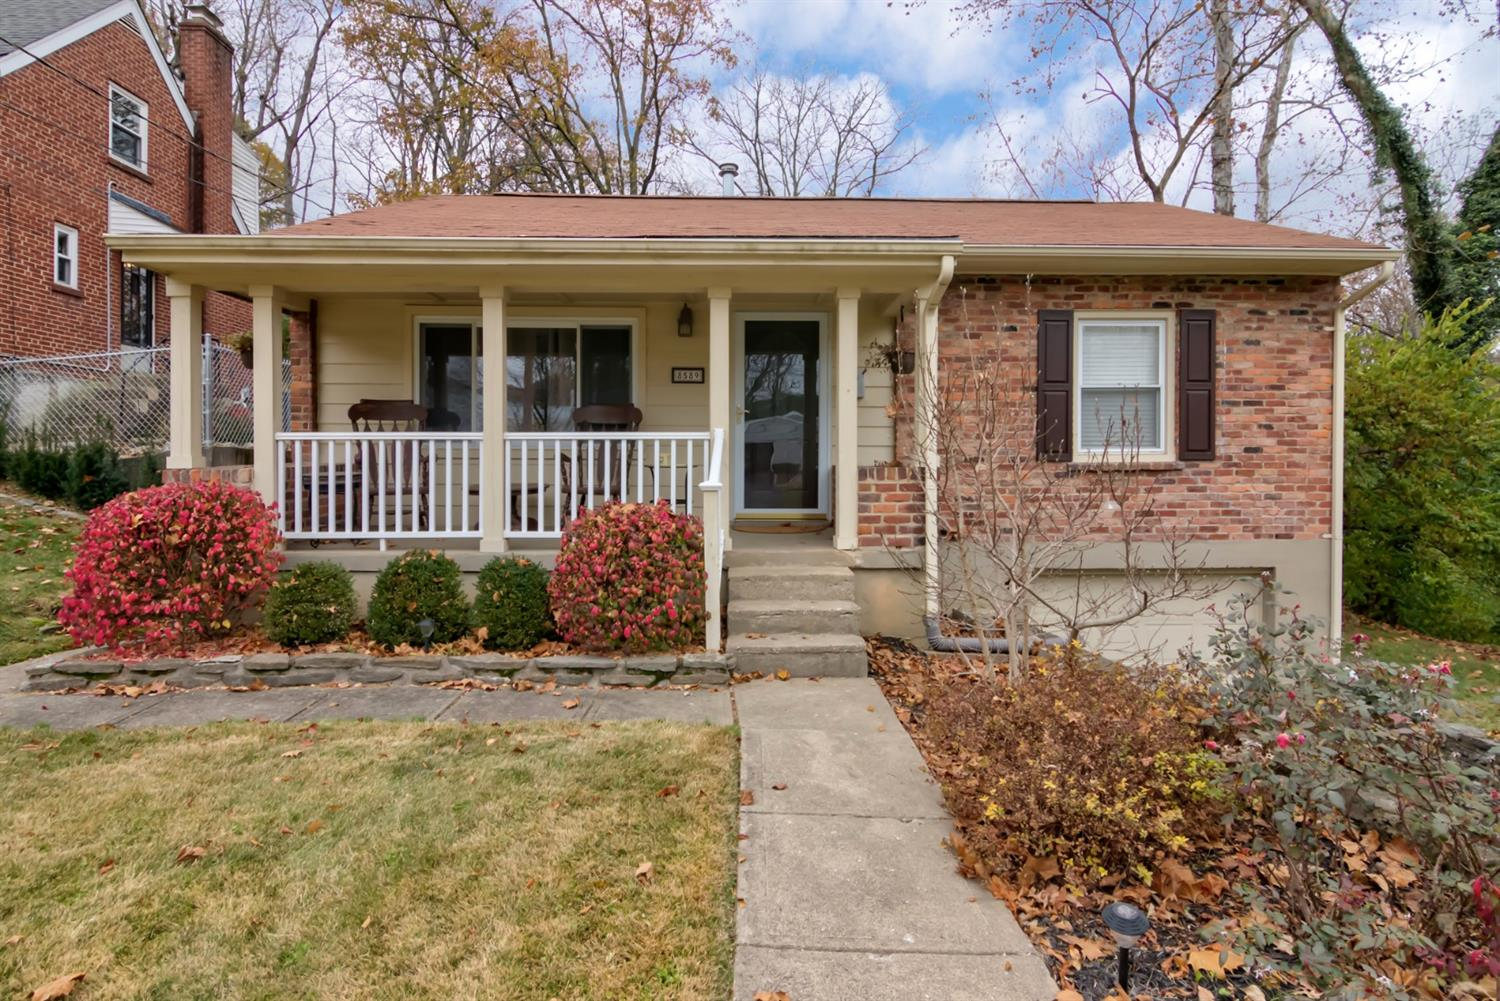 8589 Wicklow Ave Dillonvale, OH